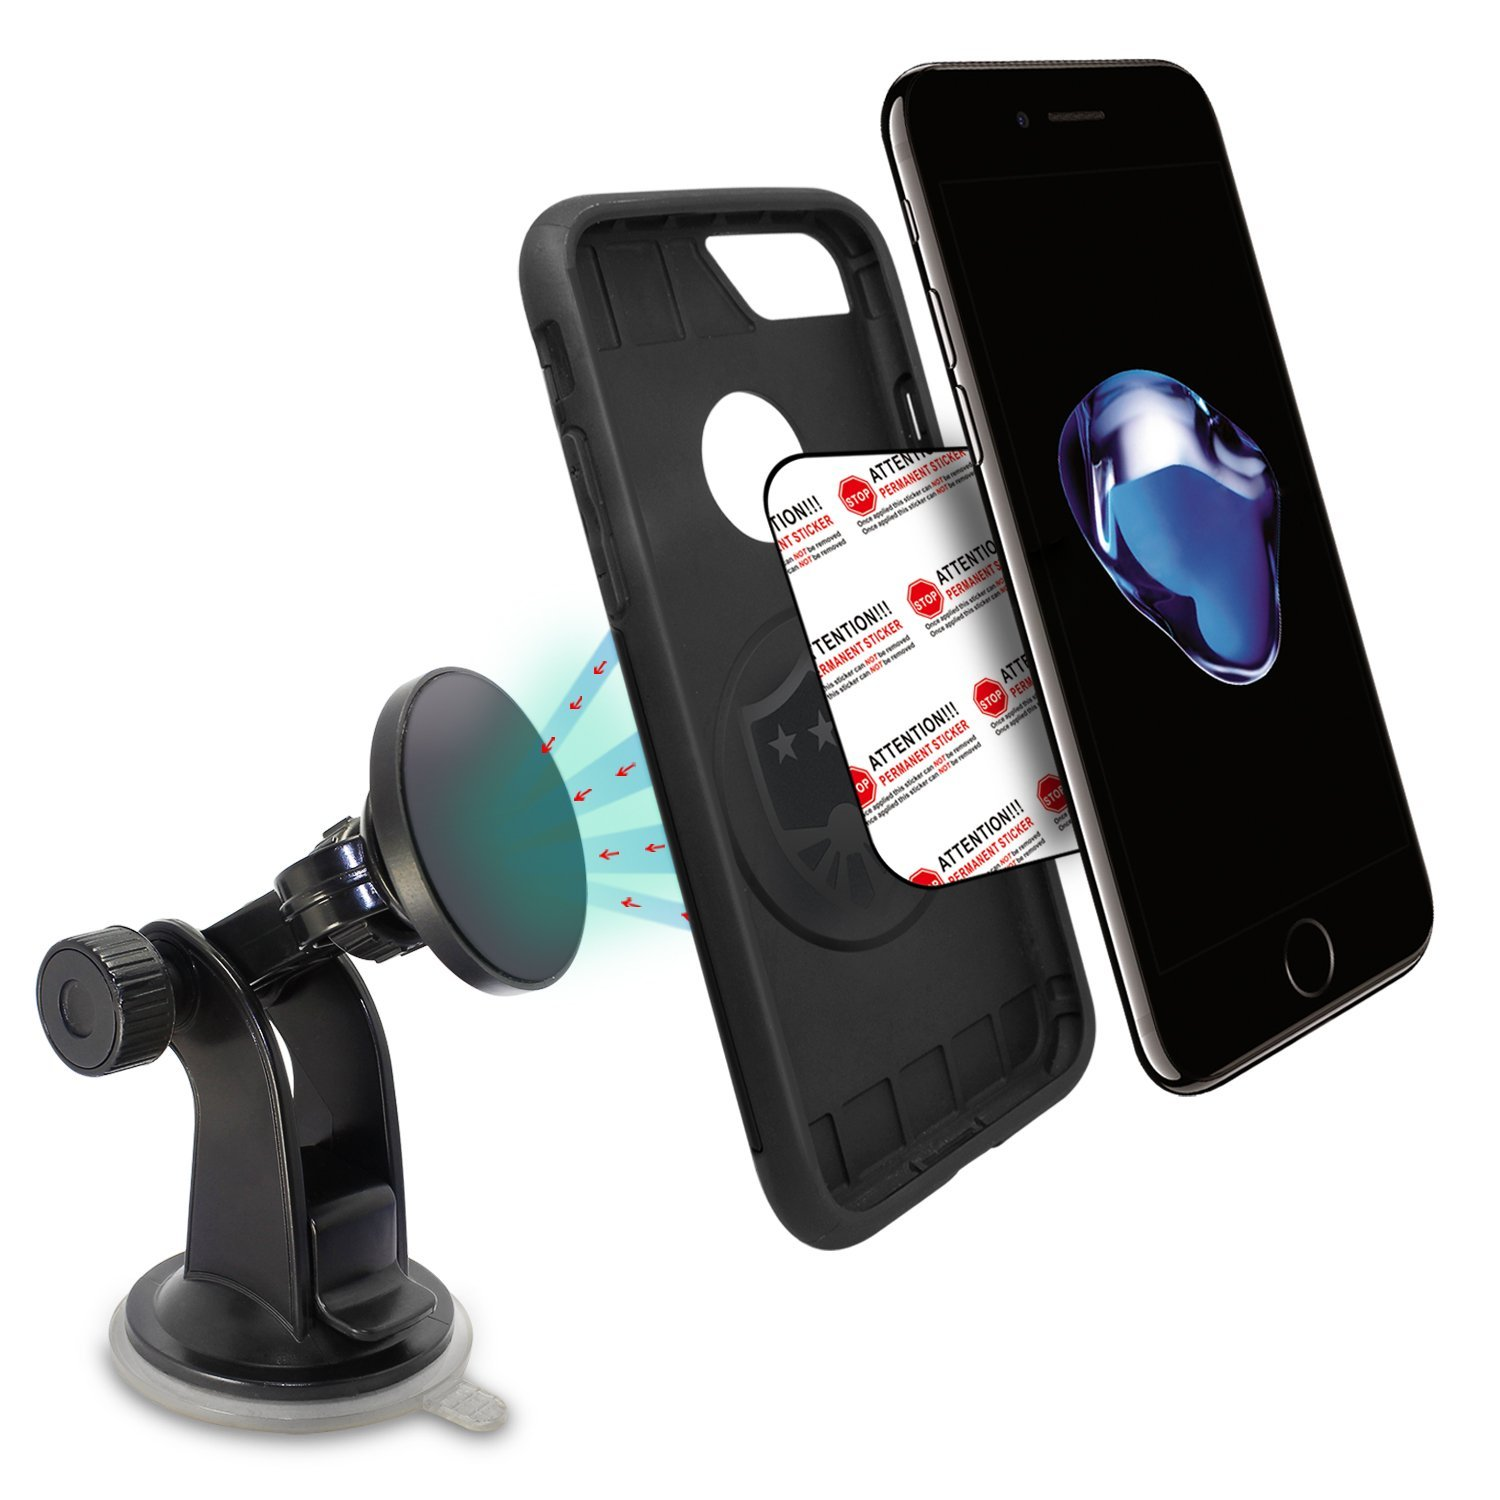 TechMatte MagGrip Windshield/Dashboard Magnetic Universal Car Mount